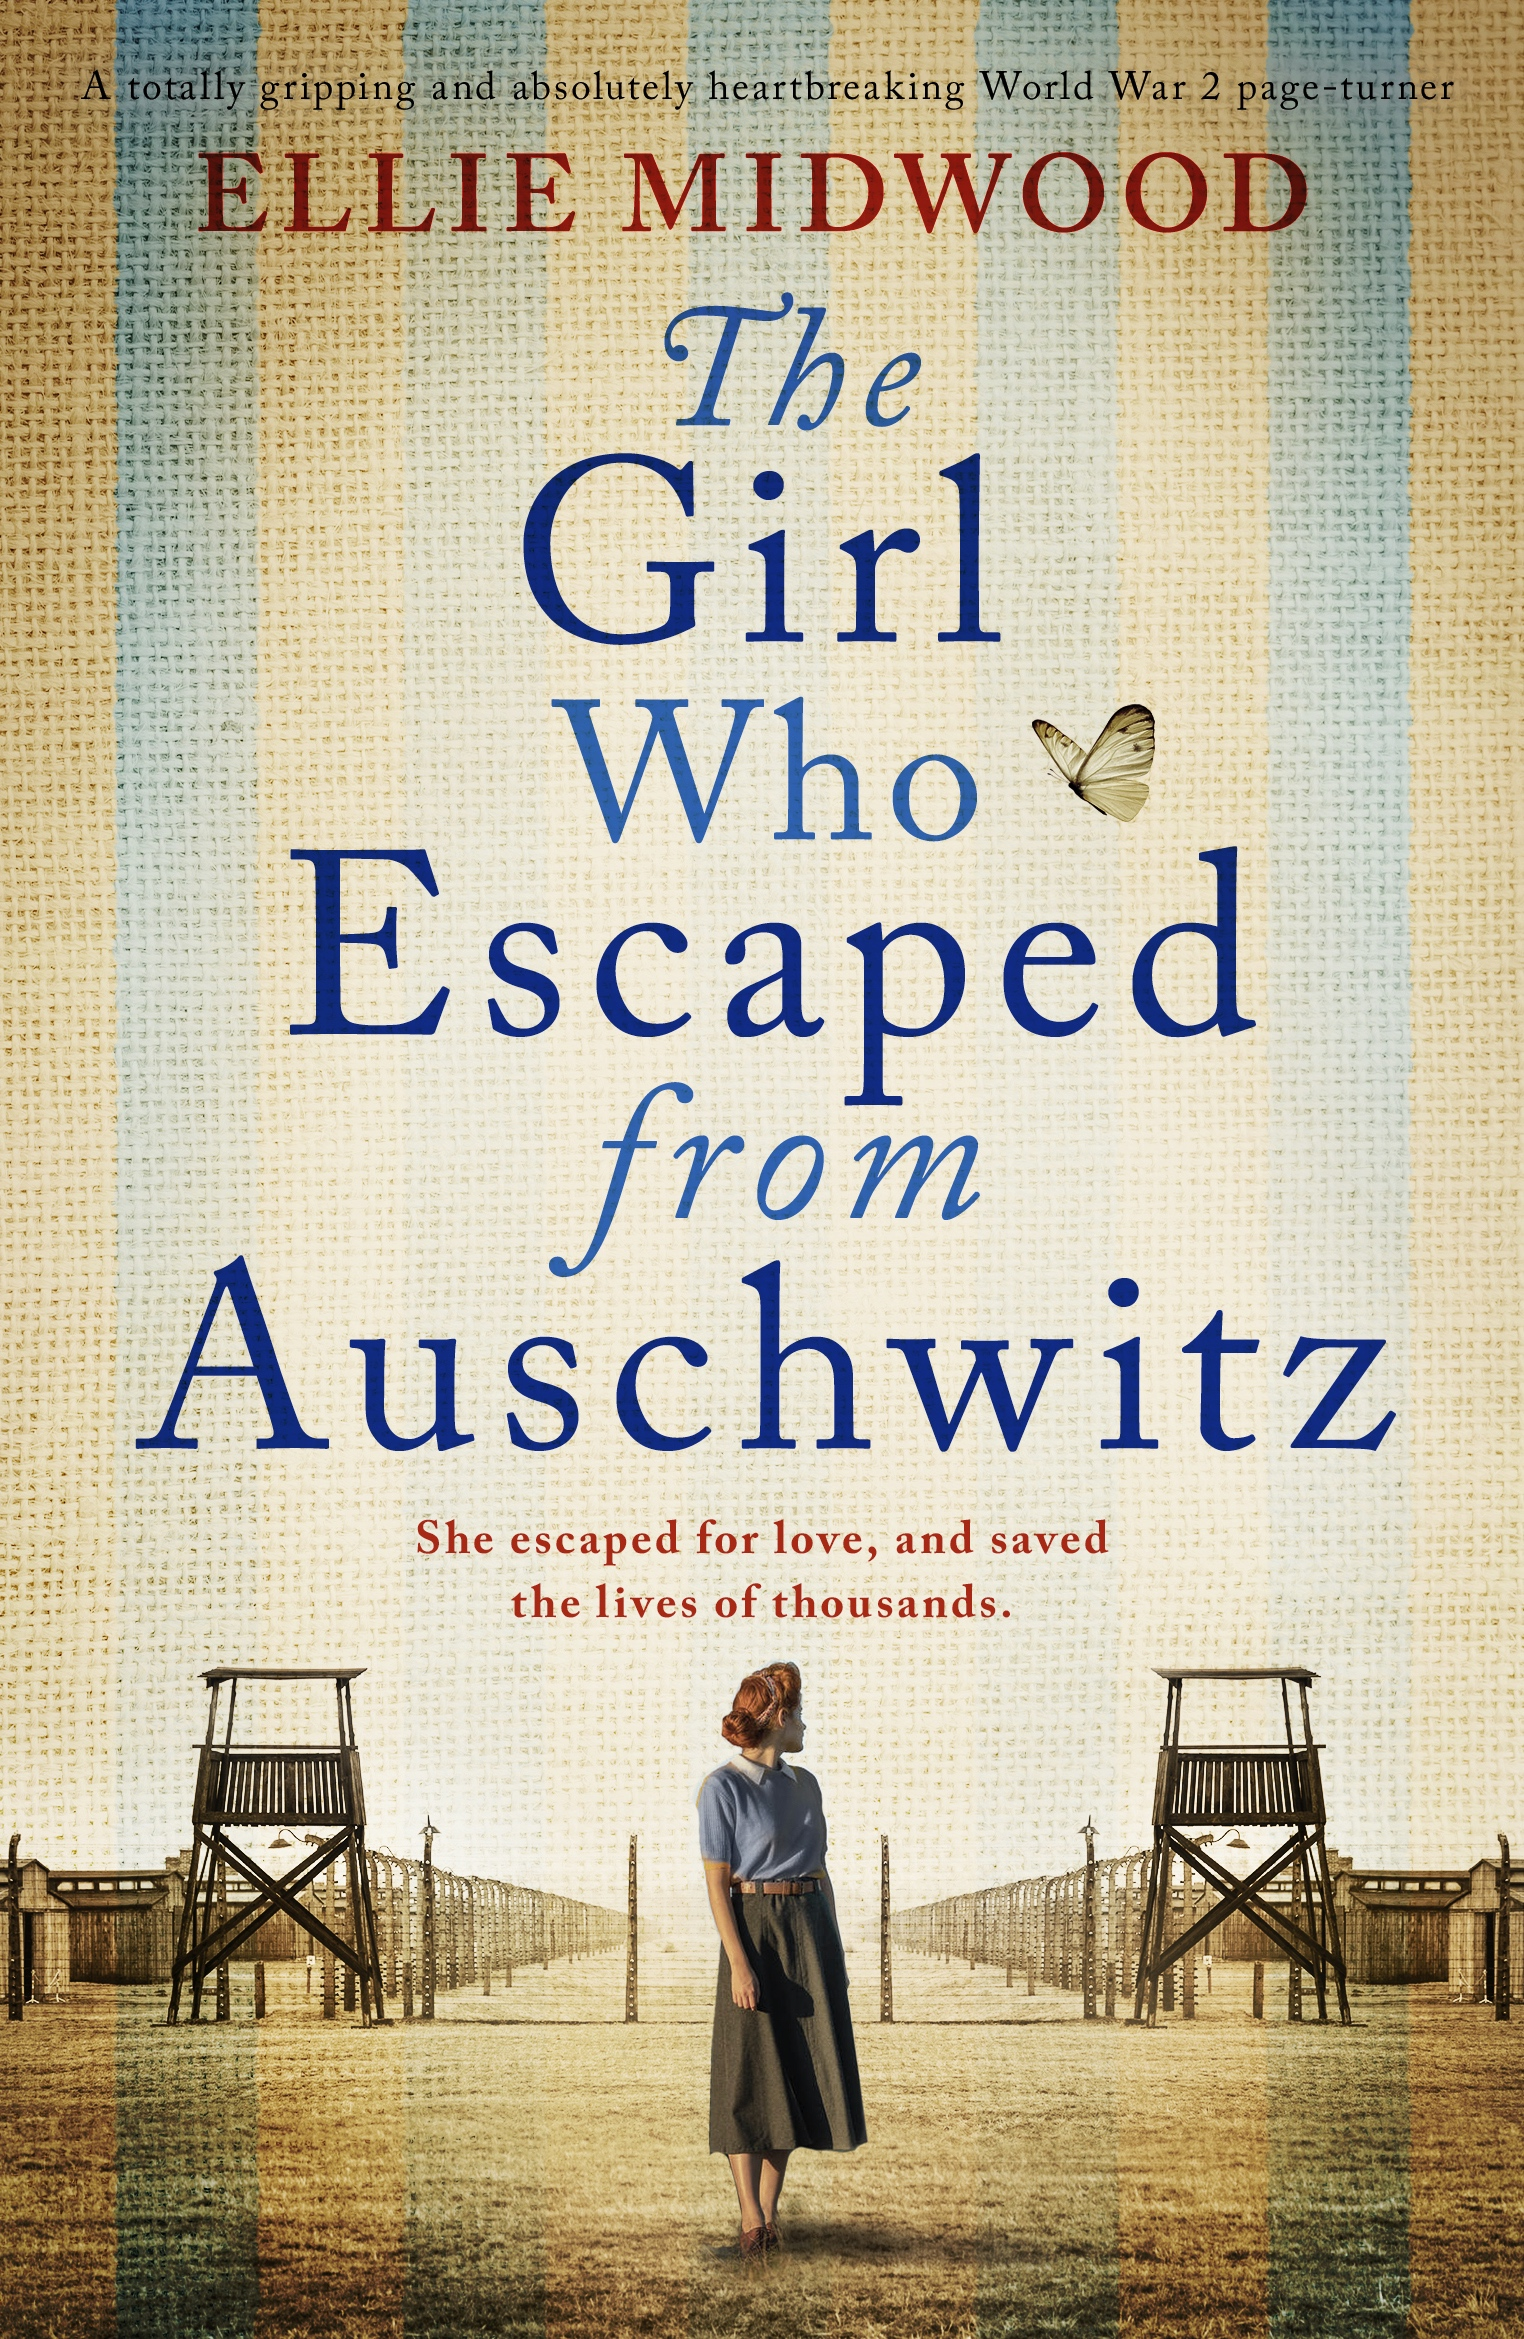 The Girl Who Escaped From Auschwitz book cover